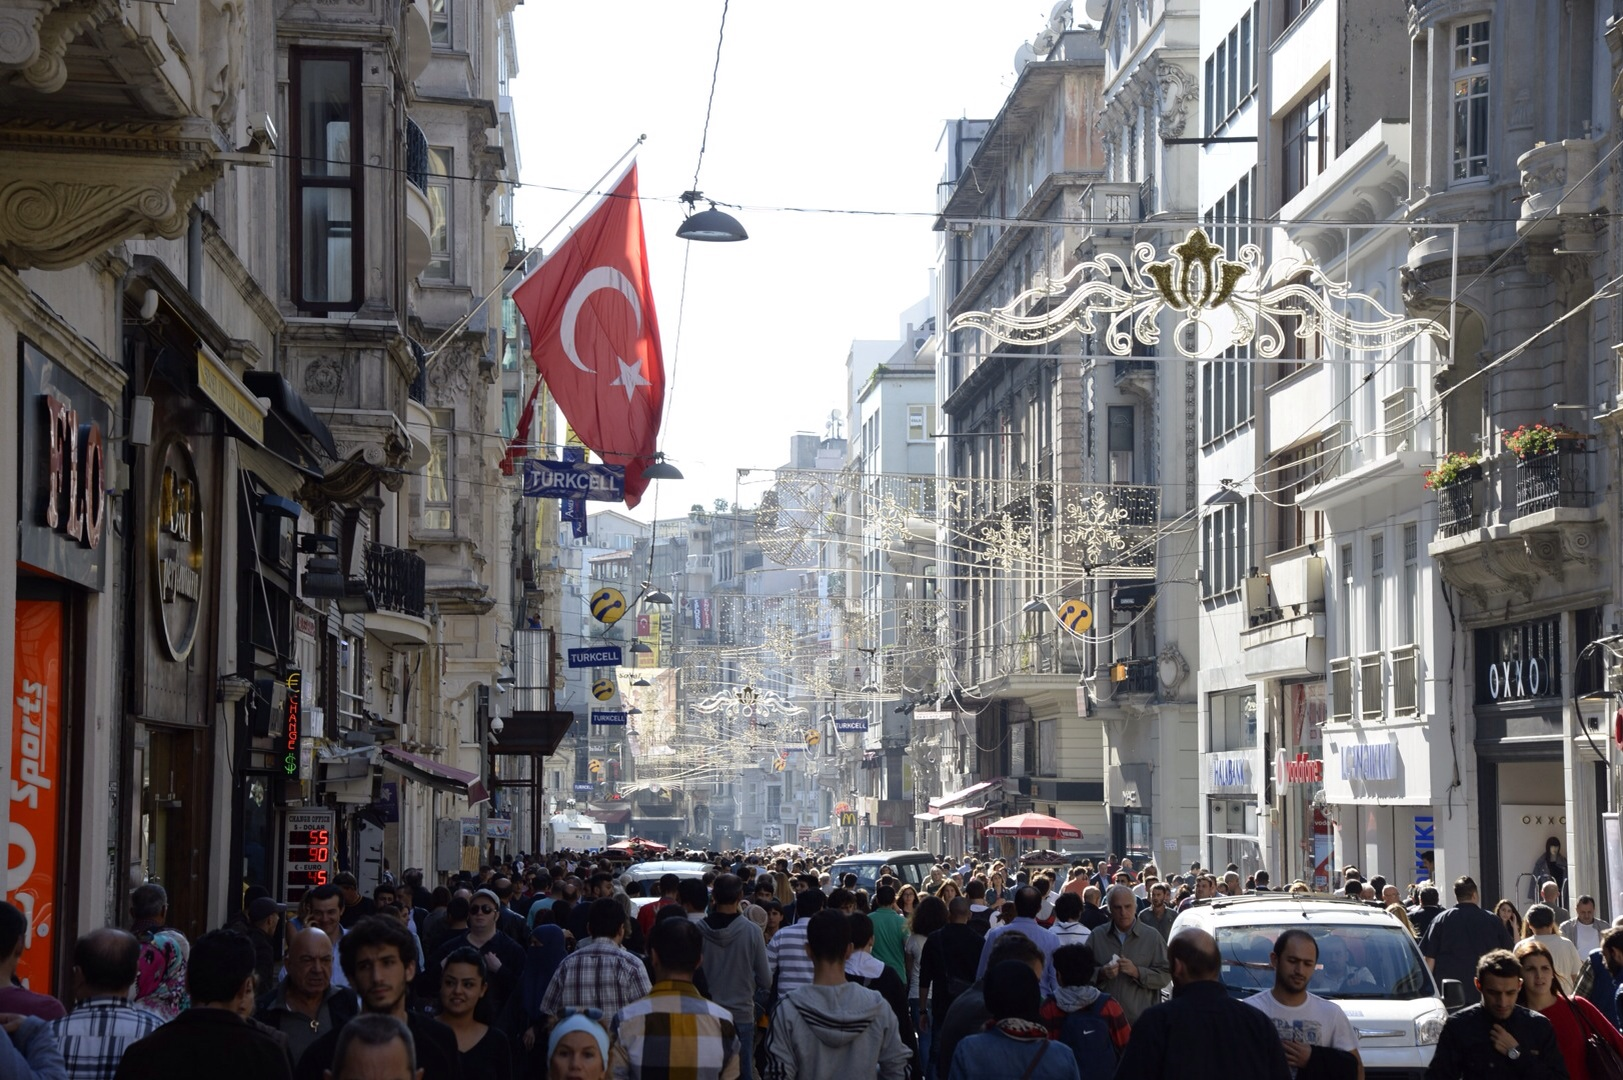 Looking down Istiklal Street